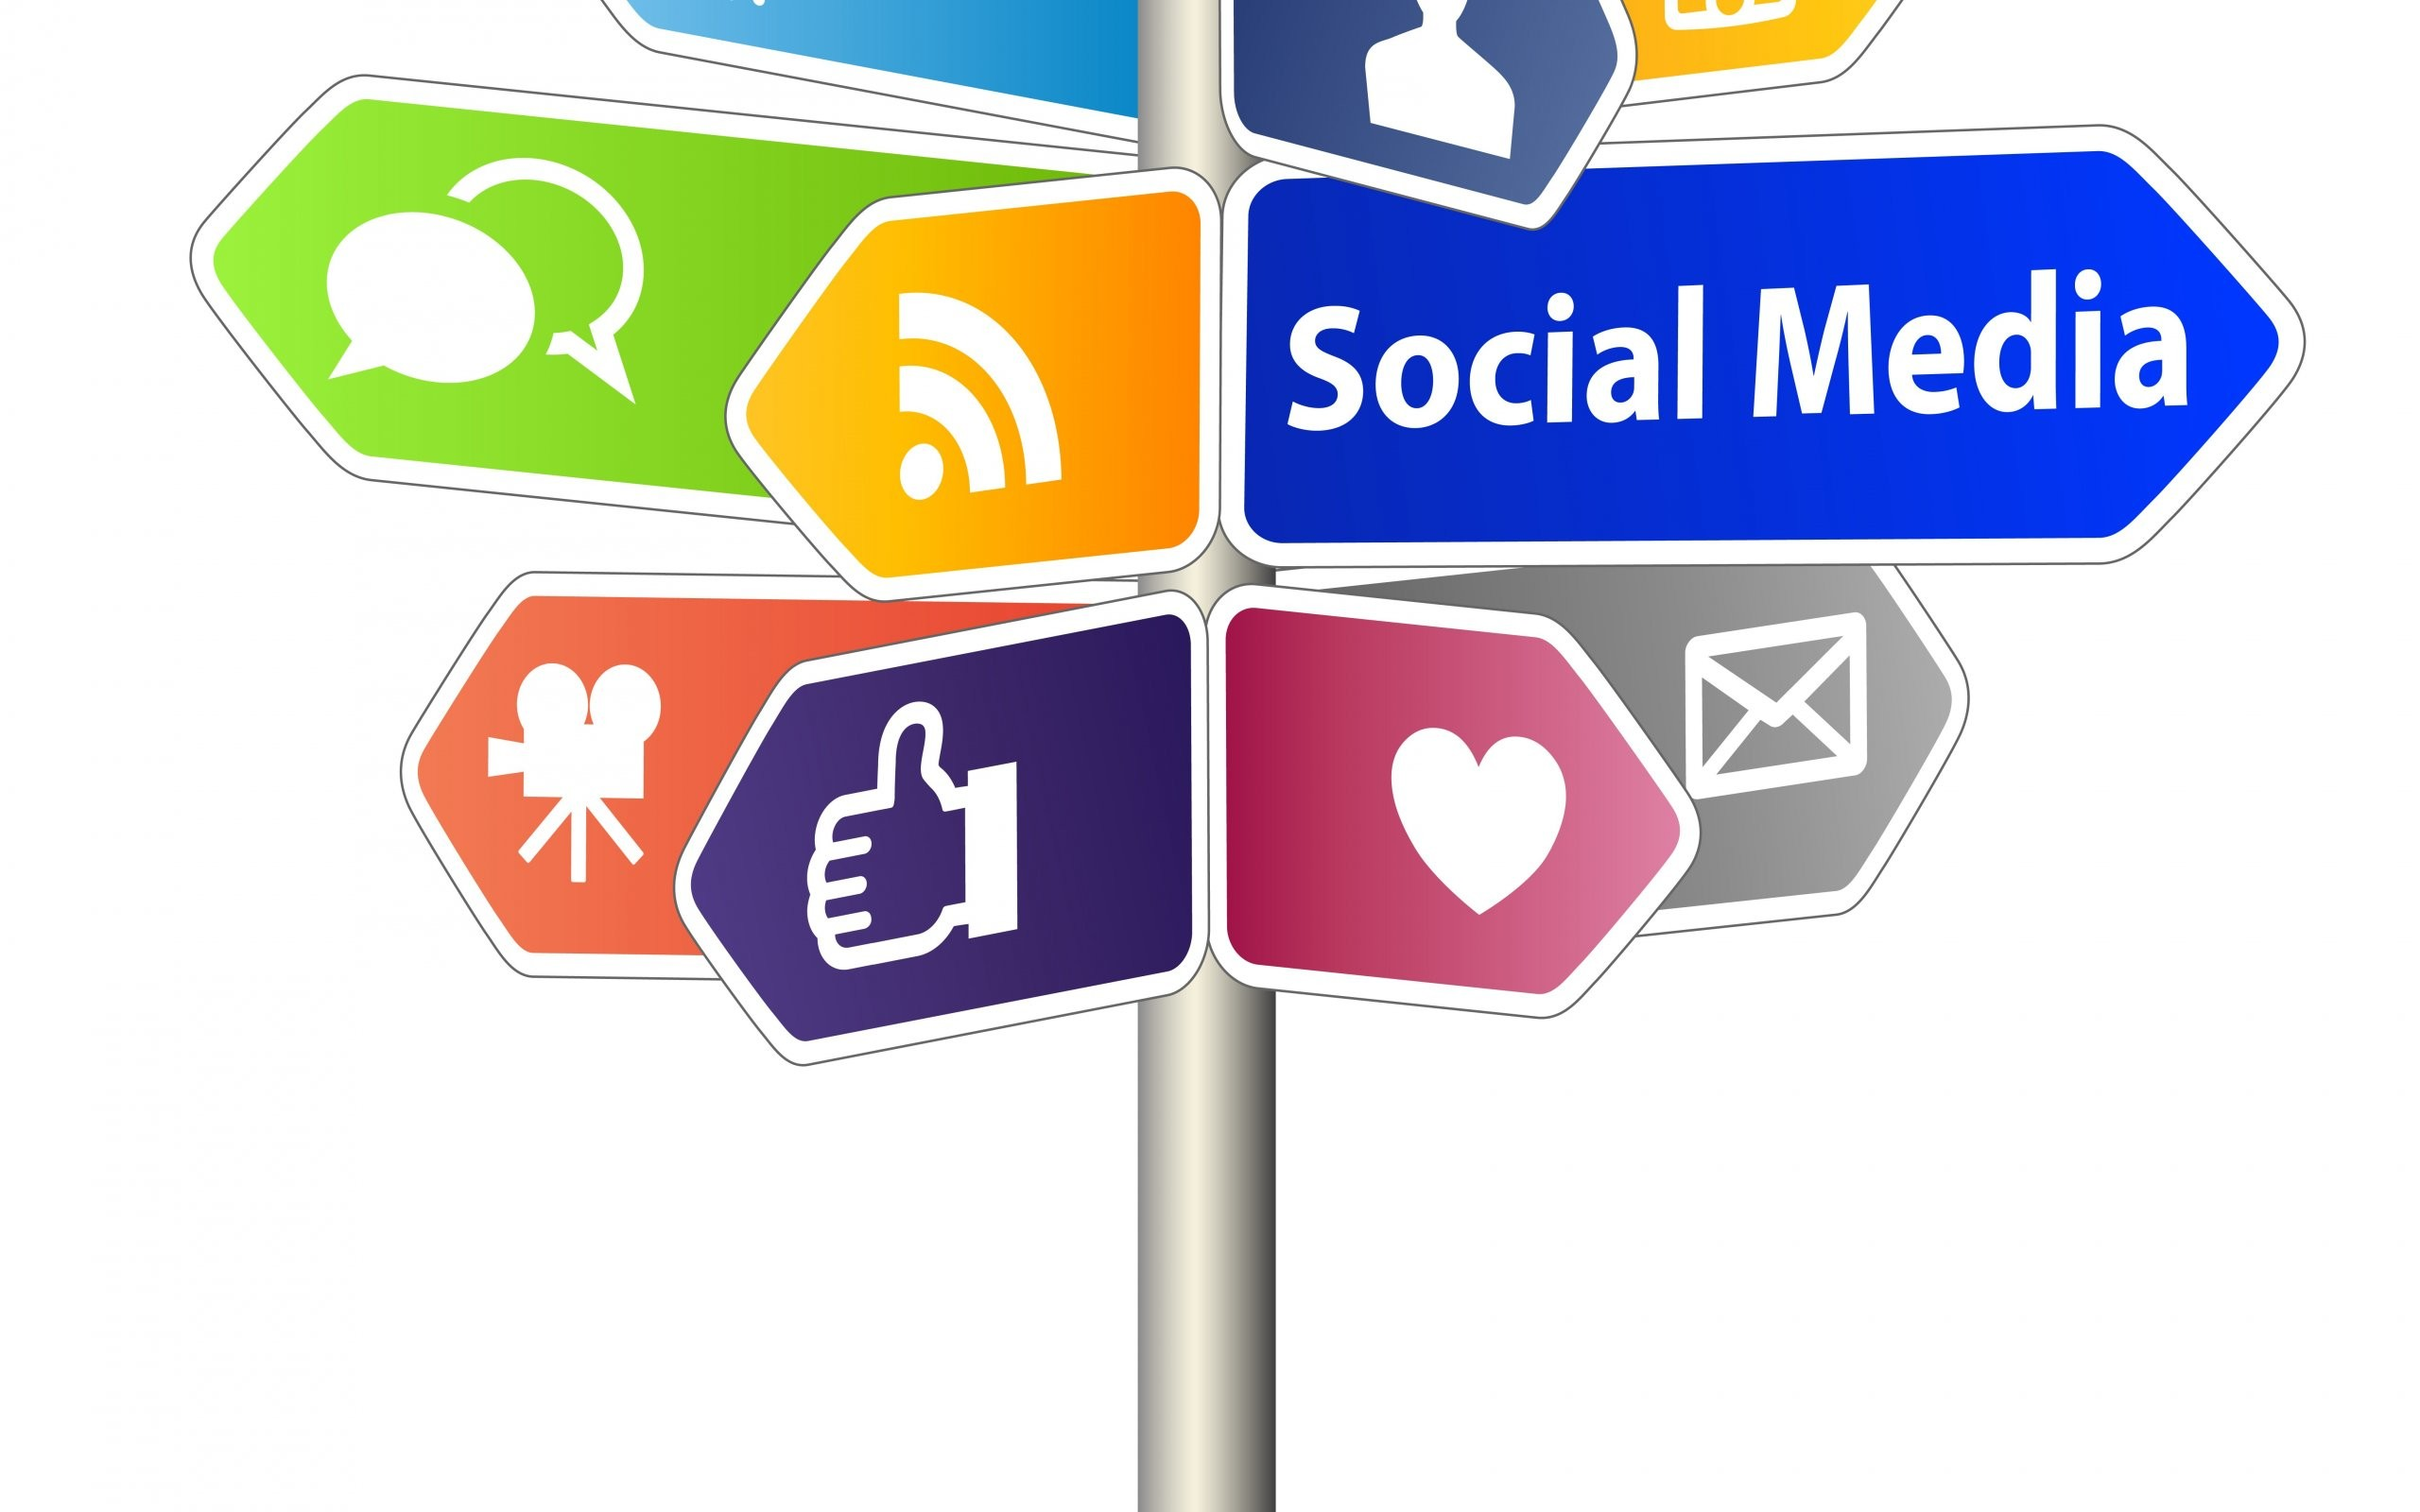 social-media-direction-board-icons-internet-wallpapers-hd